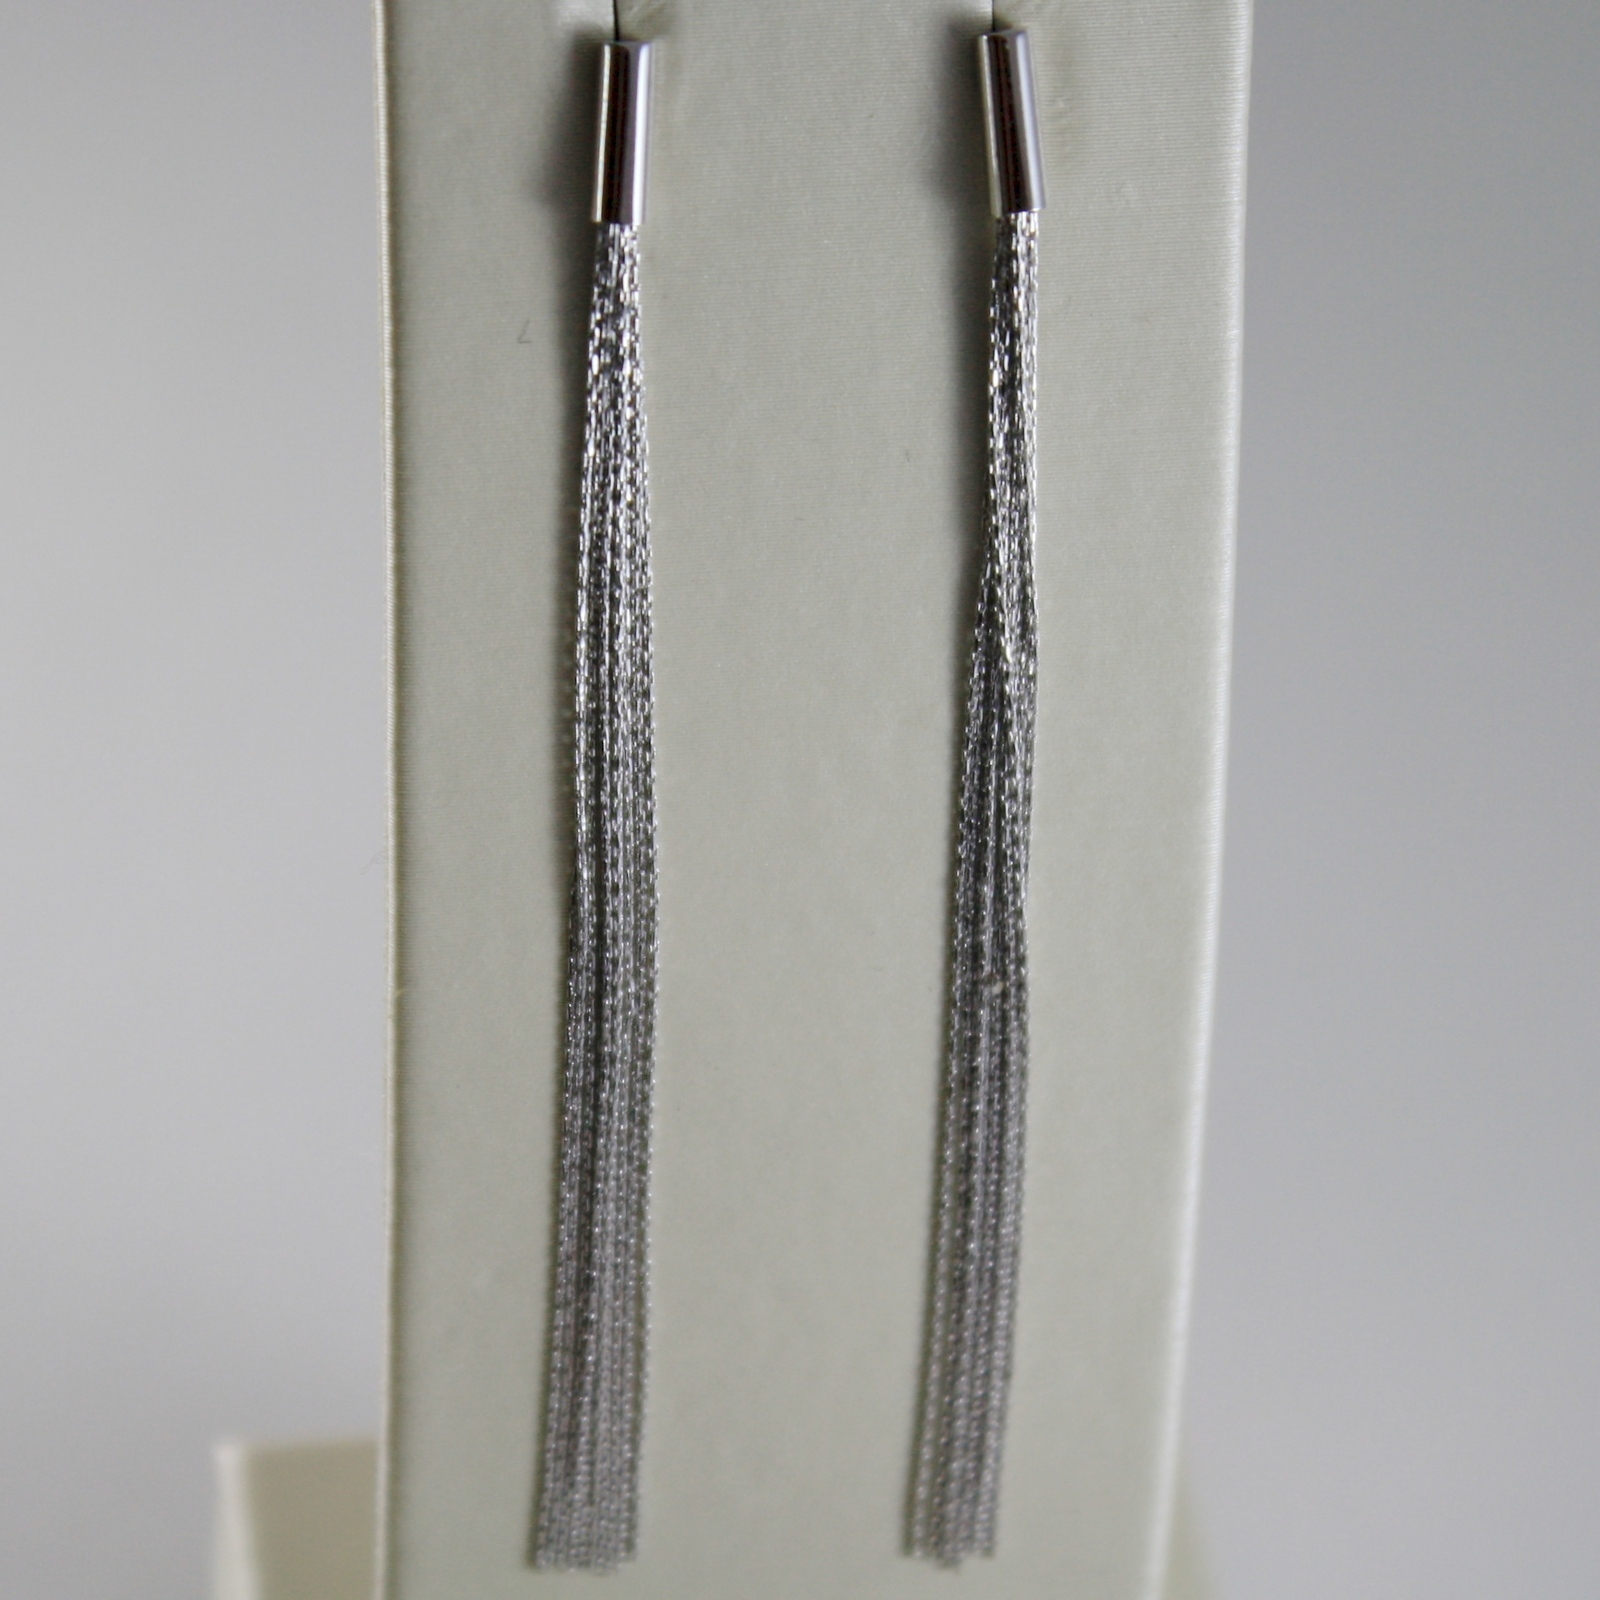 18K WHITE GOLD PENDANT EARRINGS WITH FRINGES MADE IN ITALY